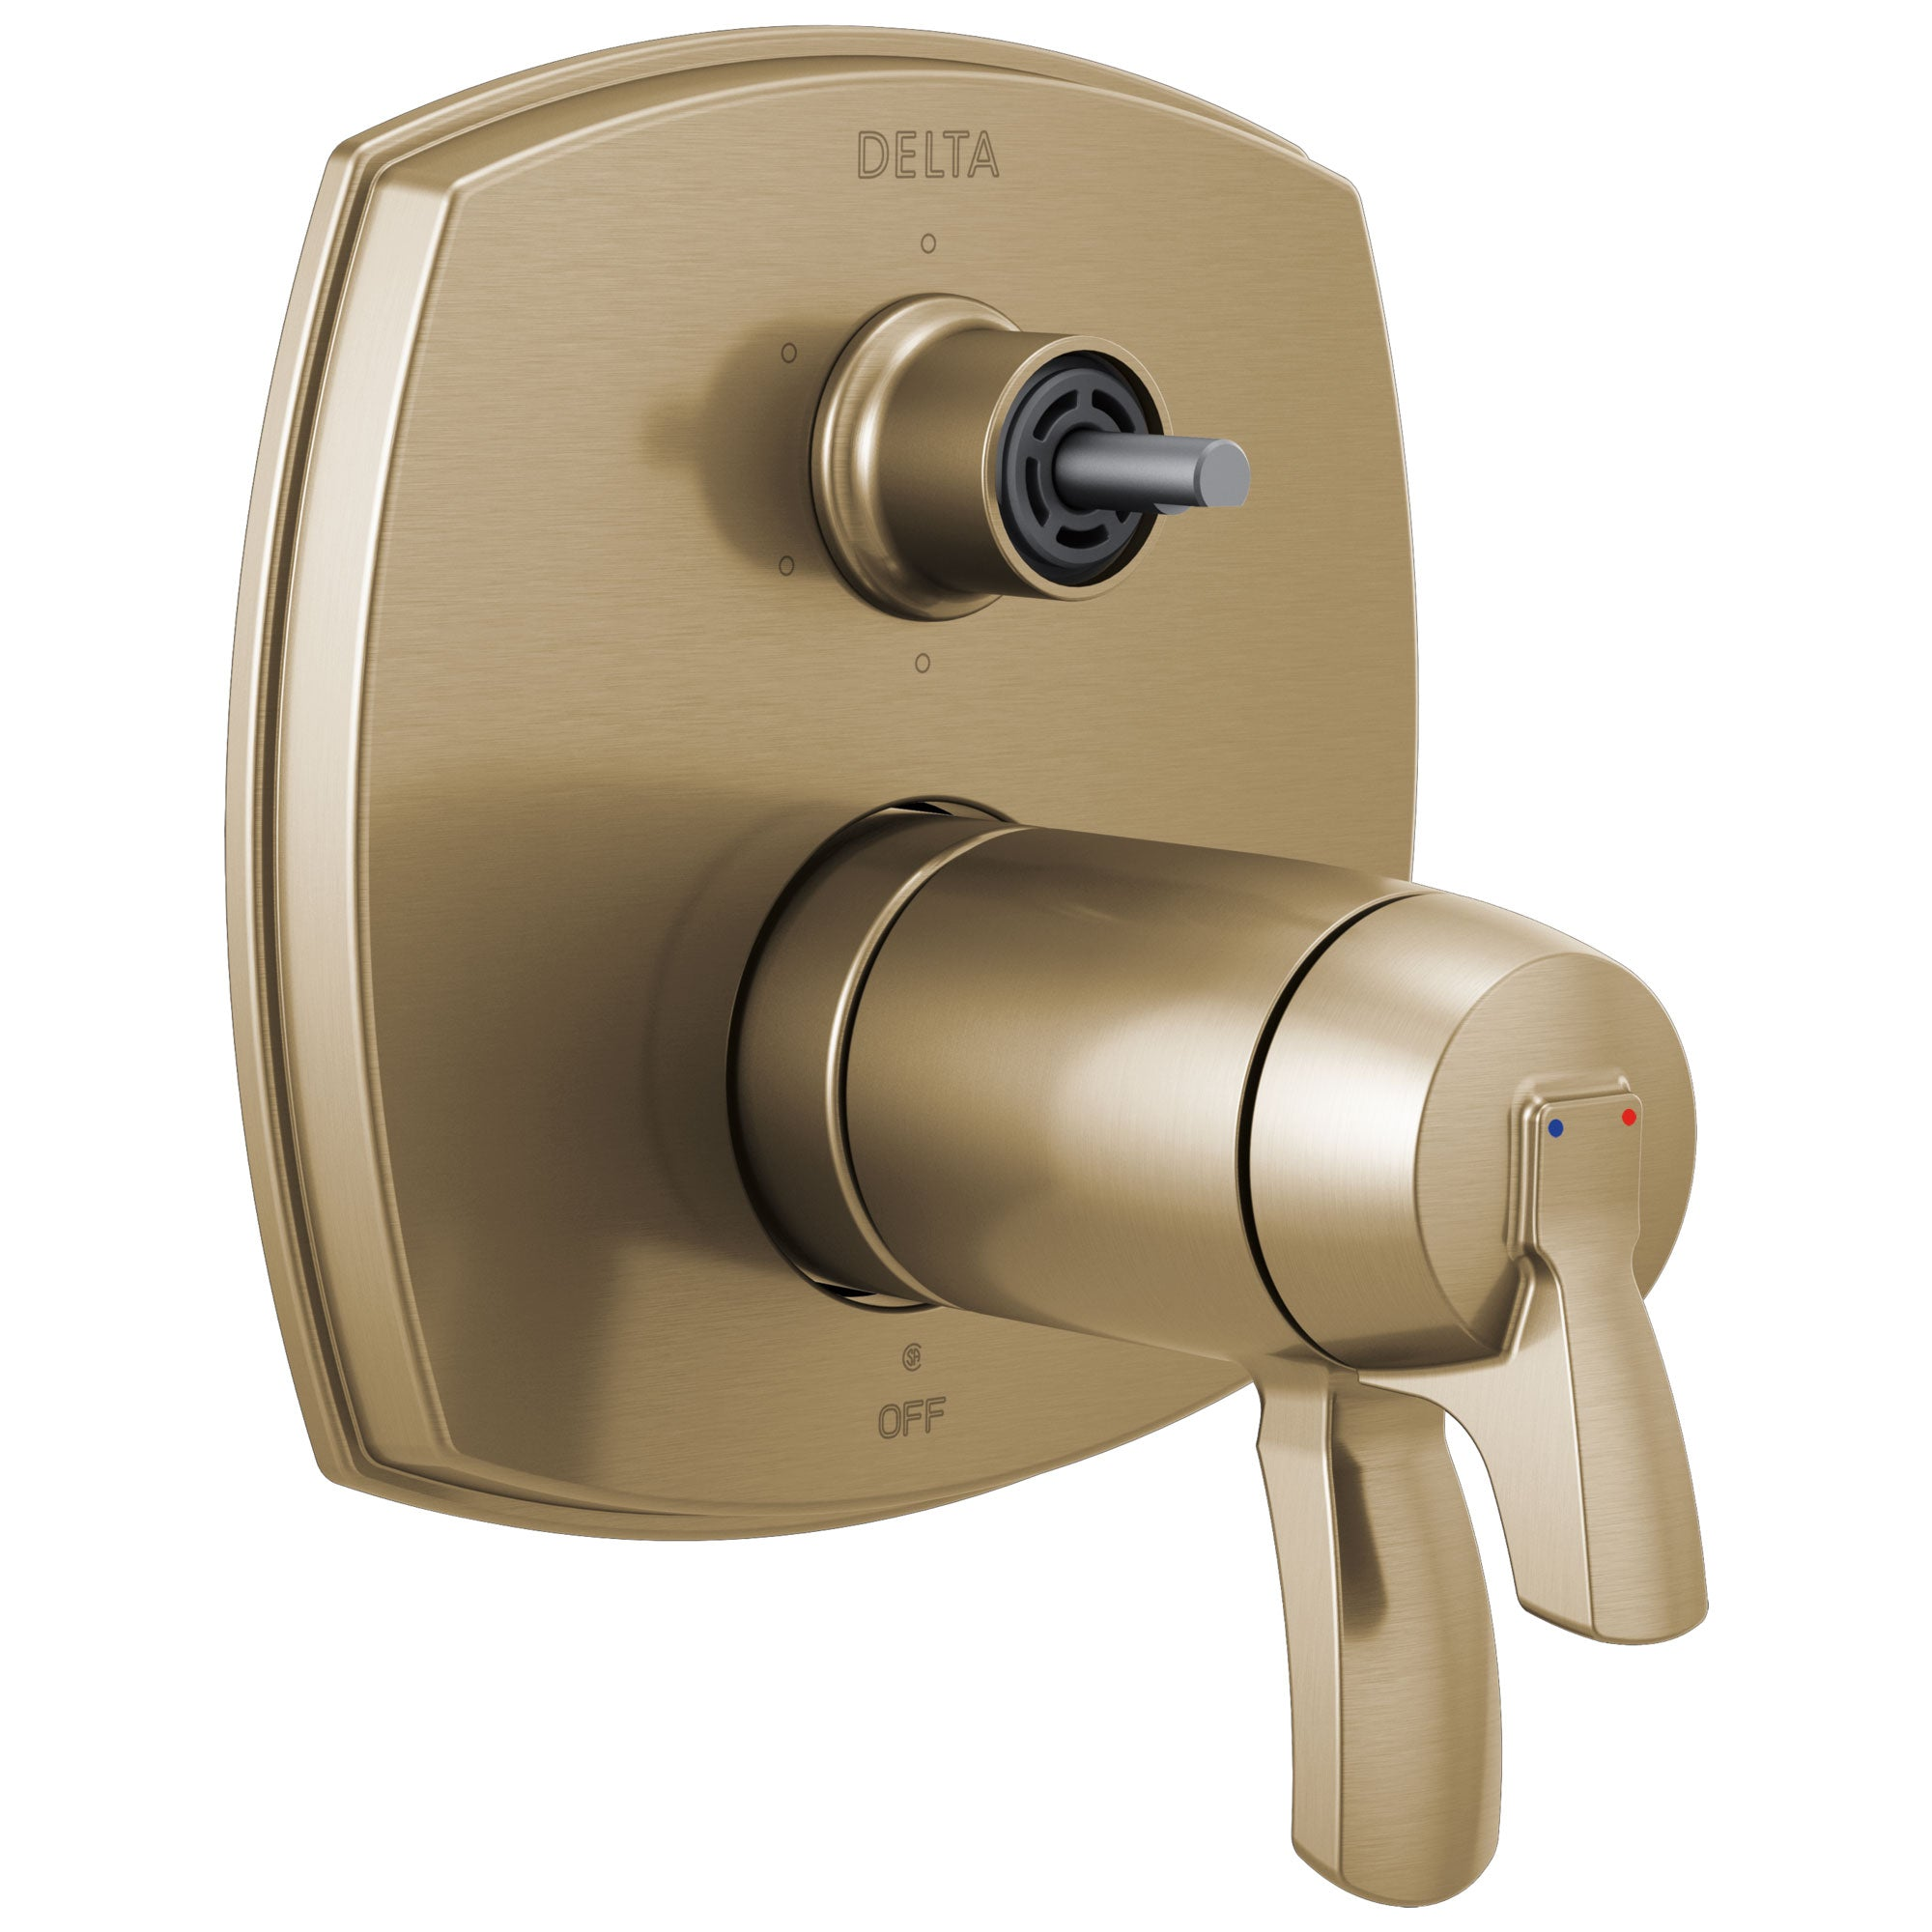 Delta Stryke Champagne Bronze Finish 17 Thermostatic Integrated Diverter Shower Control Trim with Six Function Diverter Less Diverter Handle (Requires Valve) DT27T976CZLHP